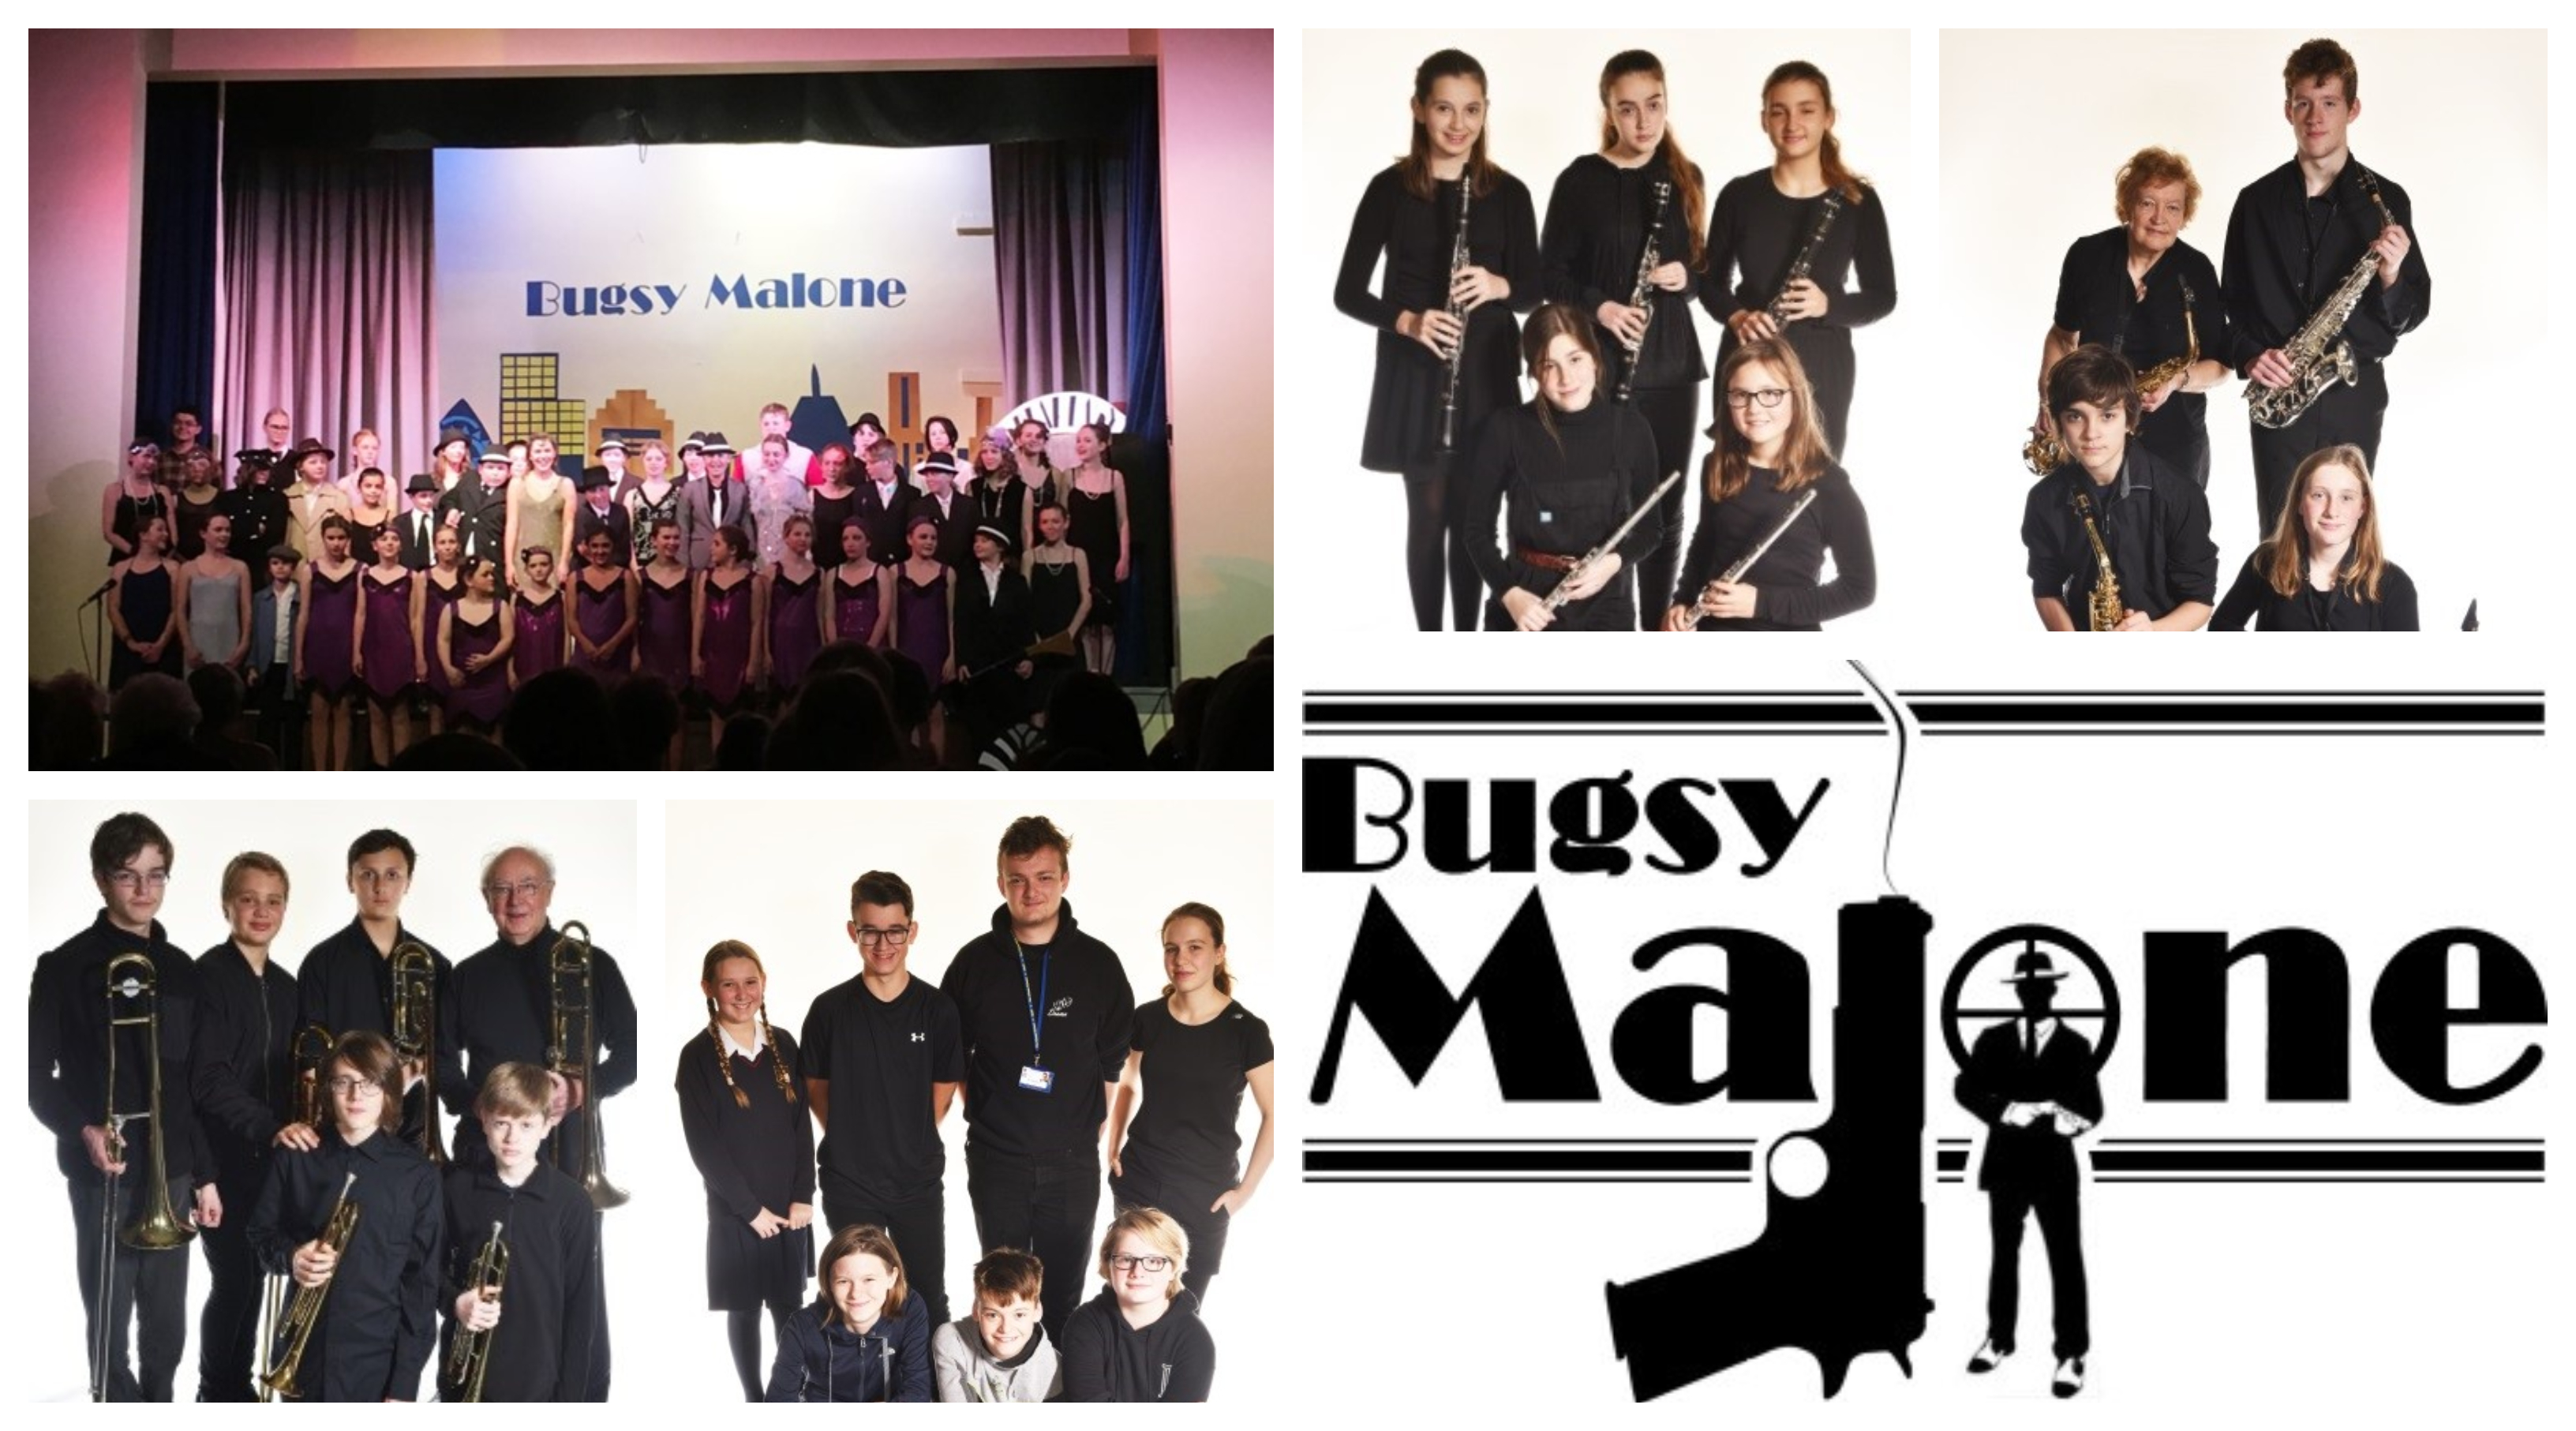 Bugsy Malone Production